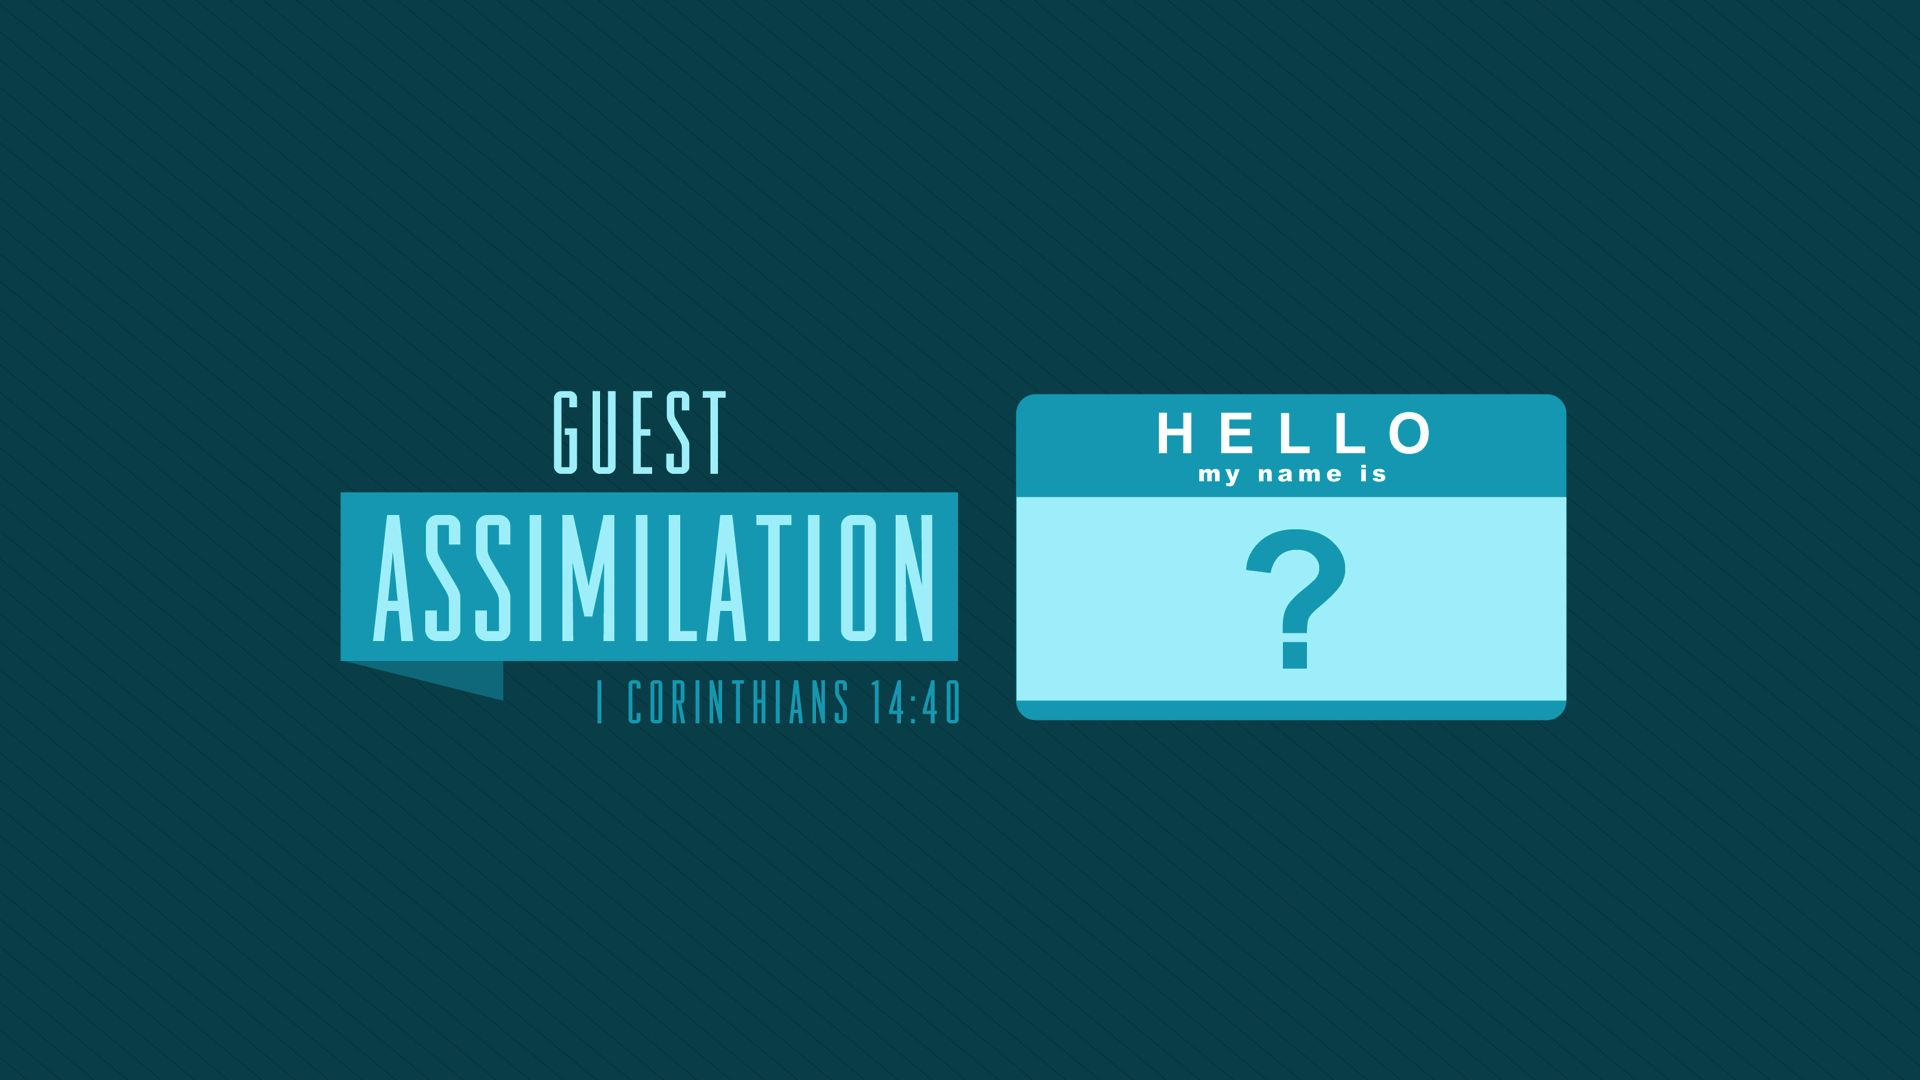 Guest Assimilation